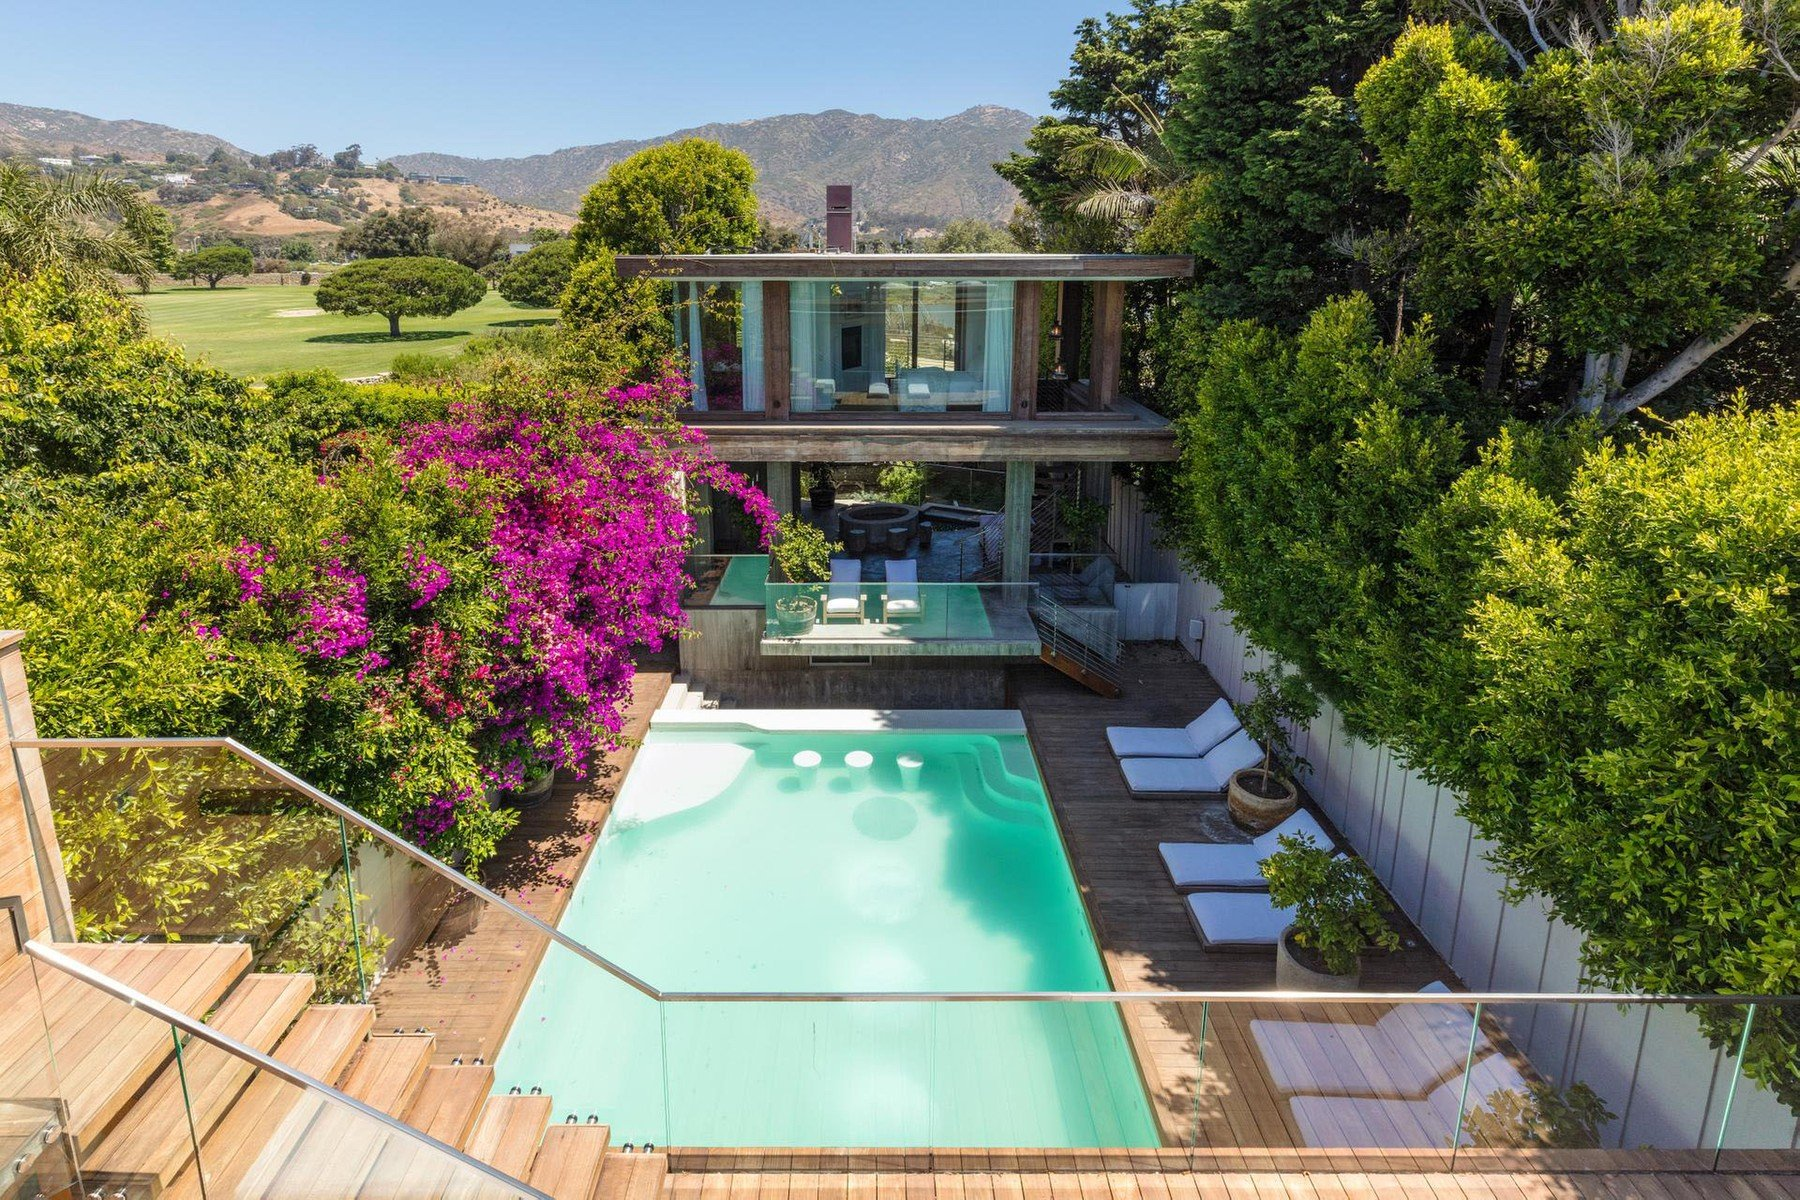 One-time 'Baywatch' babe Pamela Anderson has put her Malibu home up for lease at ,000-a-month.  The blonde bombshell has owned the Malibu Colony property for more than a decade and tried to sell it about five years ago. It's two structures separated by a swimming pool. The 5,500 square foot property has been designed by architect Philip Vertoch. The interior was designed by Pamela and interior designer Josh Chryssanthou. Inside there's a chef's kitchen and the master bedroom suite has its own fireplace and soaking tub and a patio that overlooks the pool. Including the guesthouse, which has its own hot tub and custom fire pit, there are four bedrooms and three bathrooms., Image: 386667555, License: Rights-managed, Restrictions: , Model Release: no, Credit line: Profimedia, IMP Features